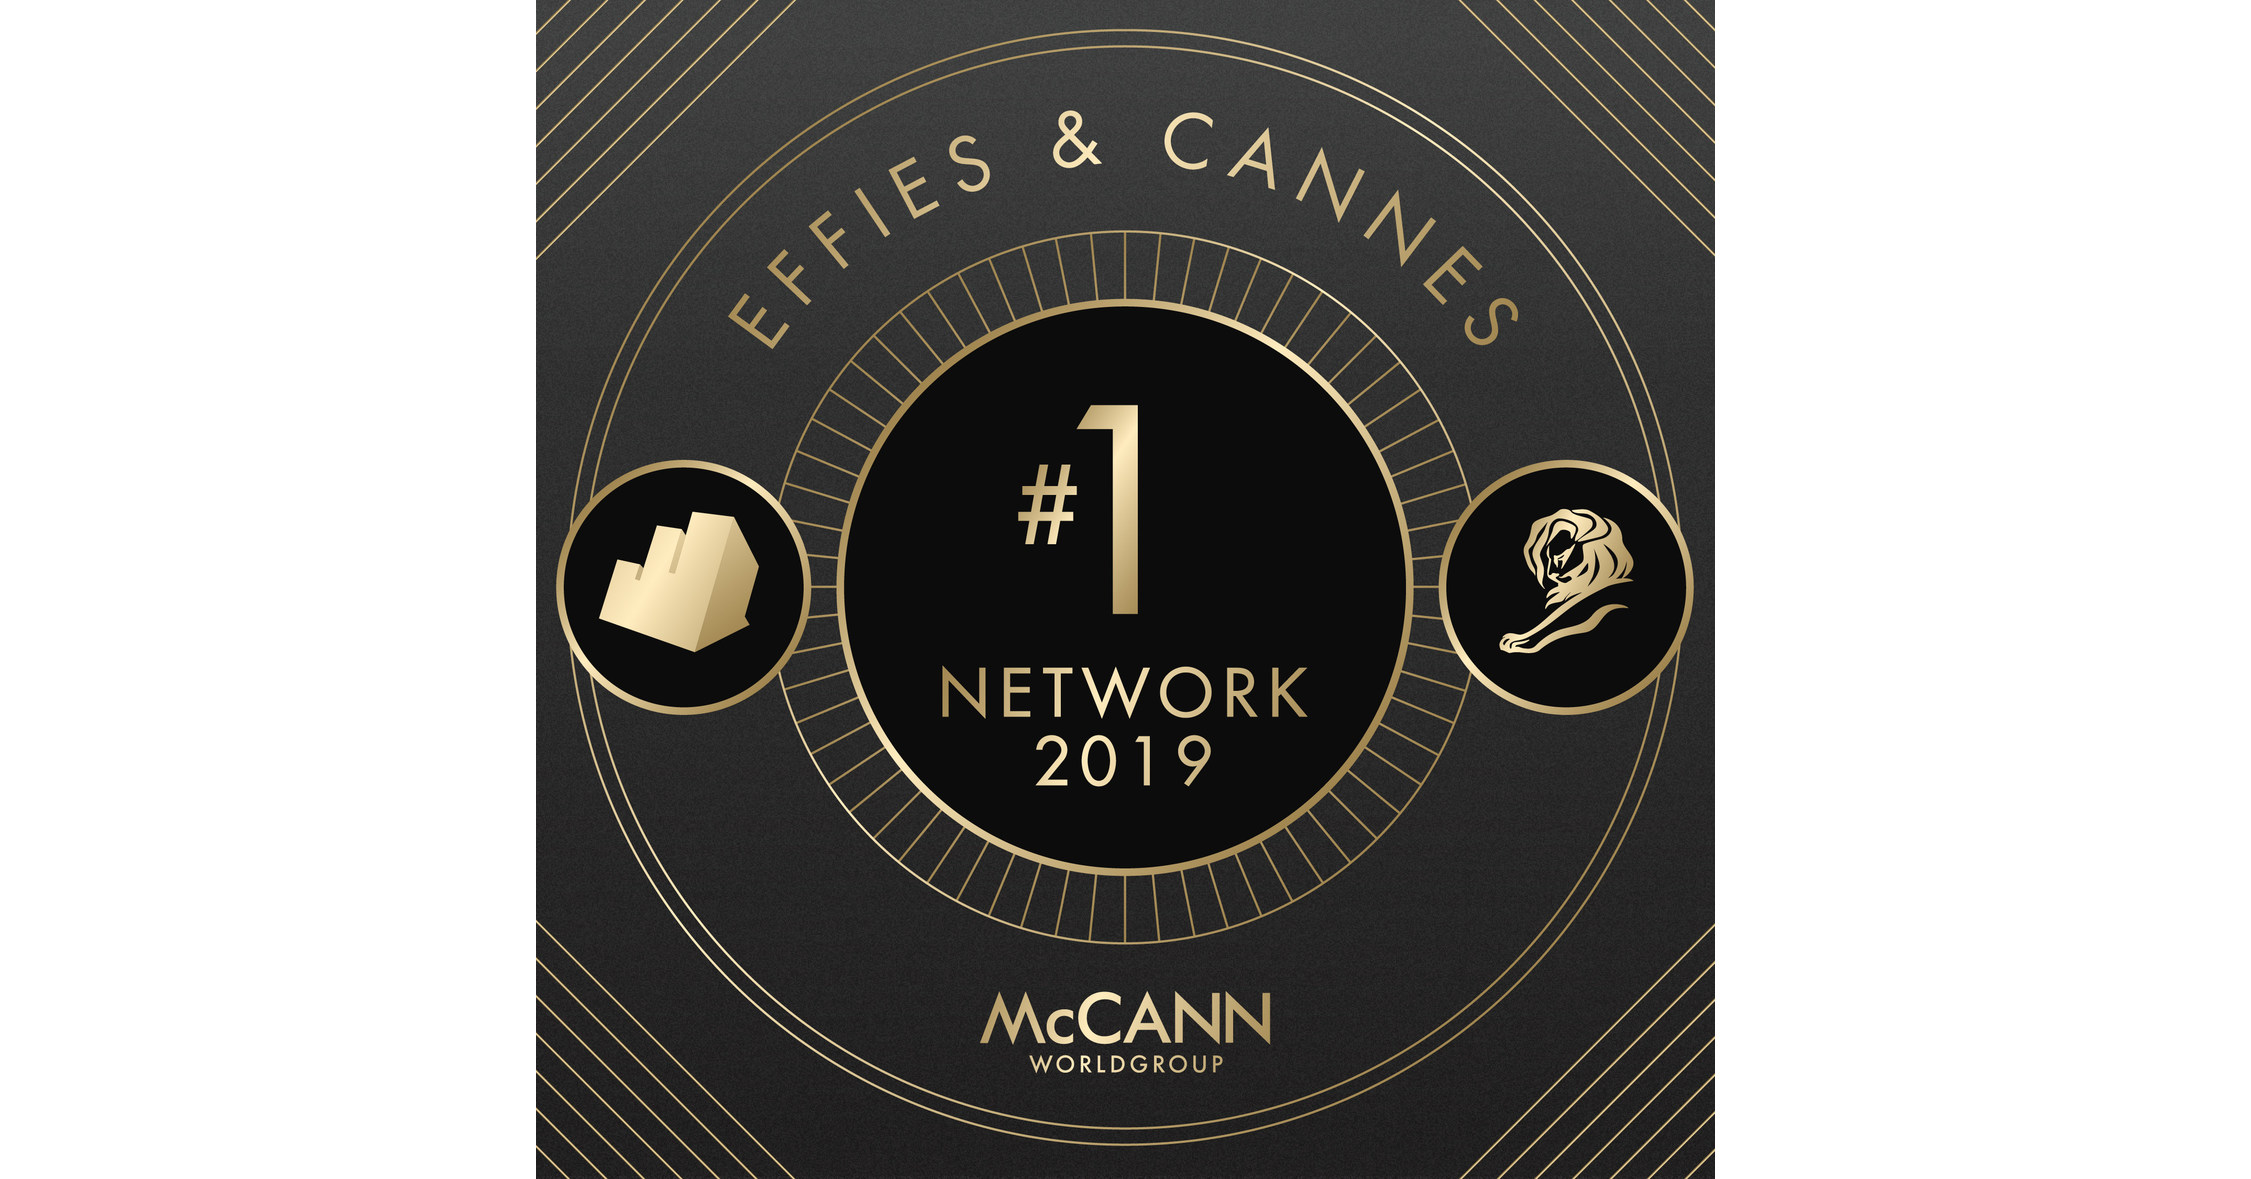 McCann Worldgroup Named Cannes 2019 Network of the Year As Well As Healthcare Network of the Year